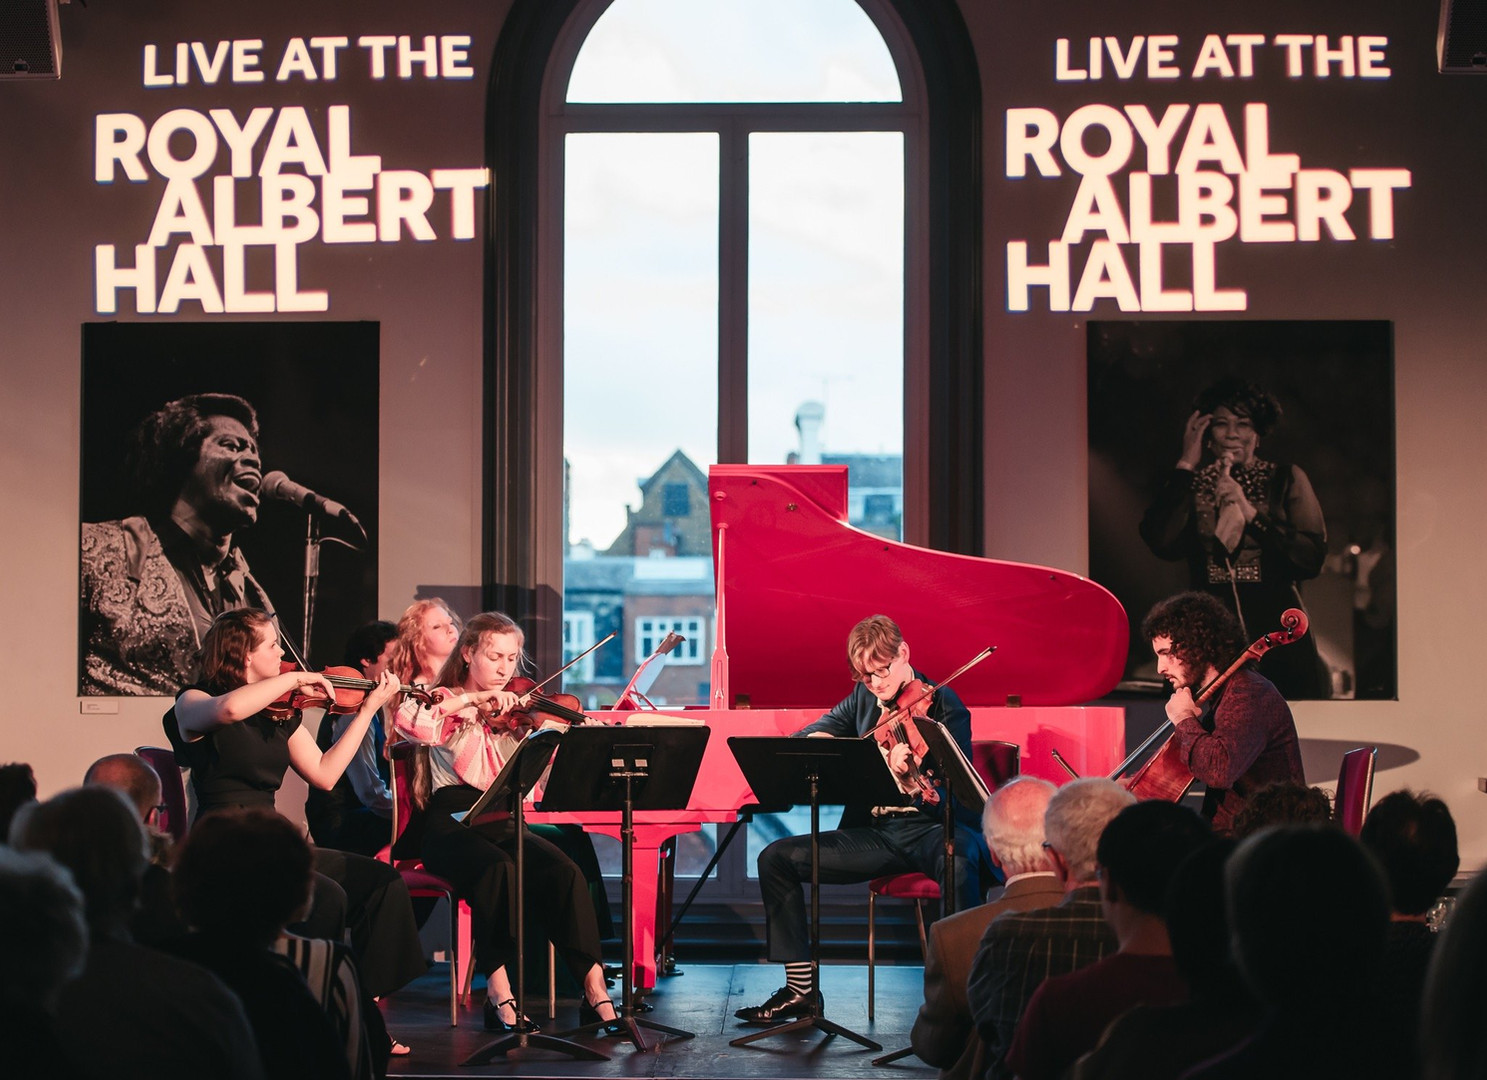 Sophie leading the Taneyev Quintet at the Royal Albert Hall